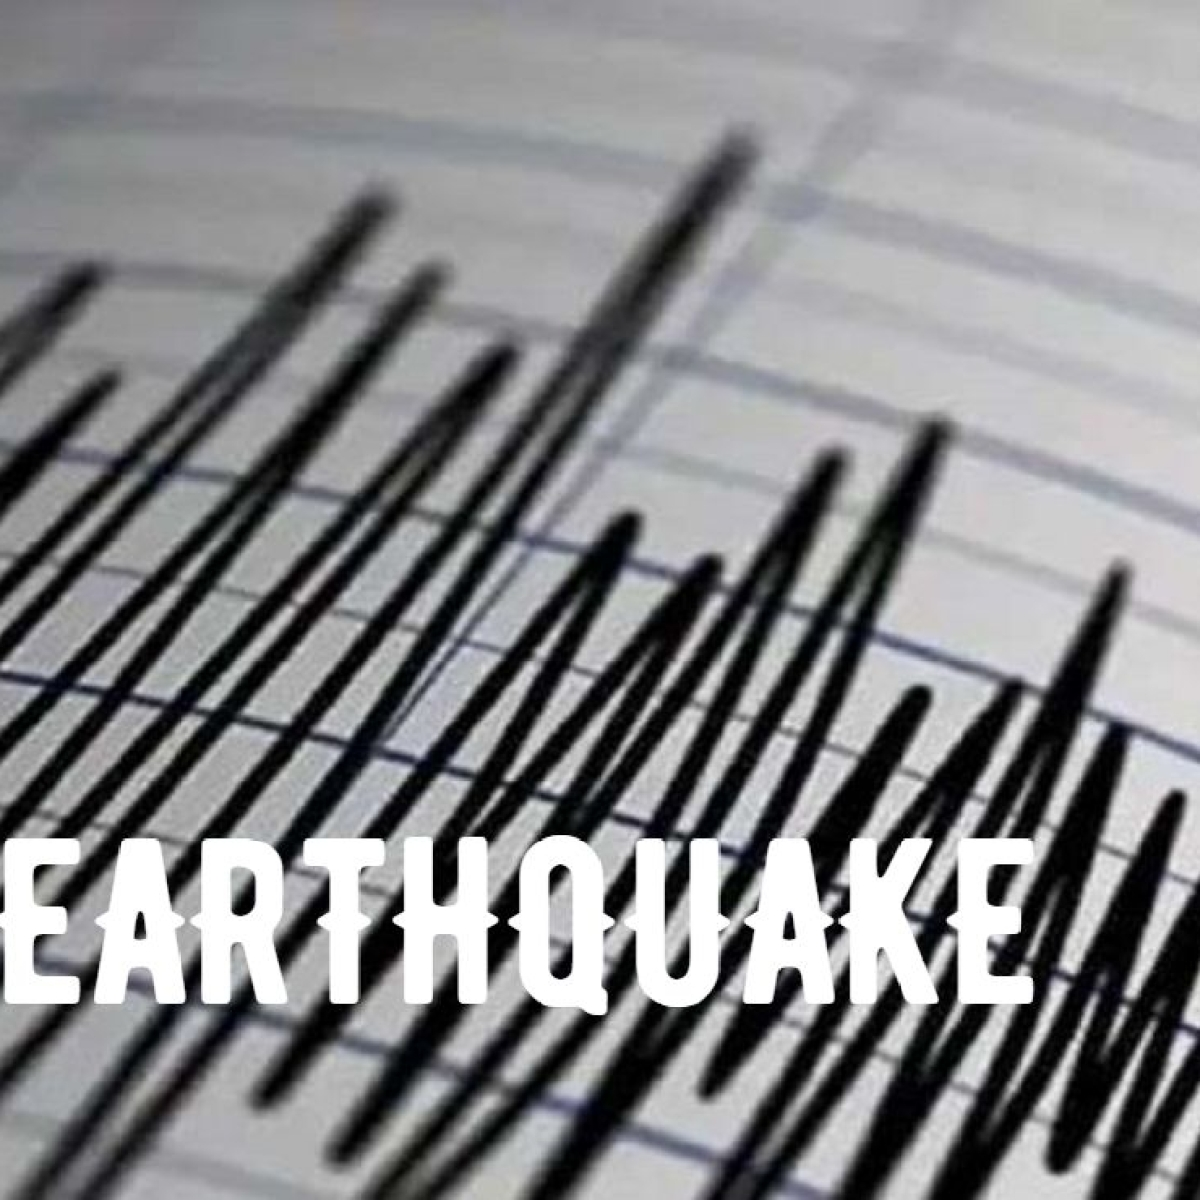 6.4 magnitude earthquake hits Assam - Here's what we know so far